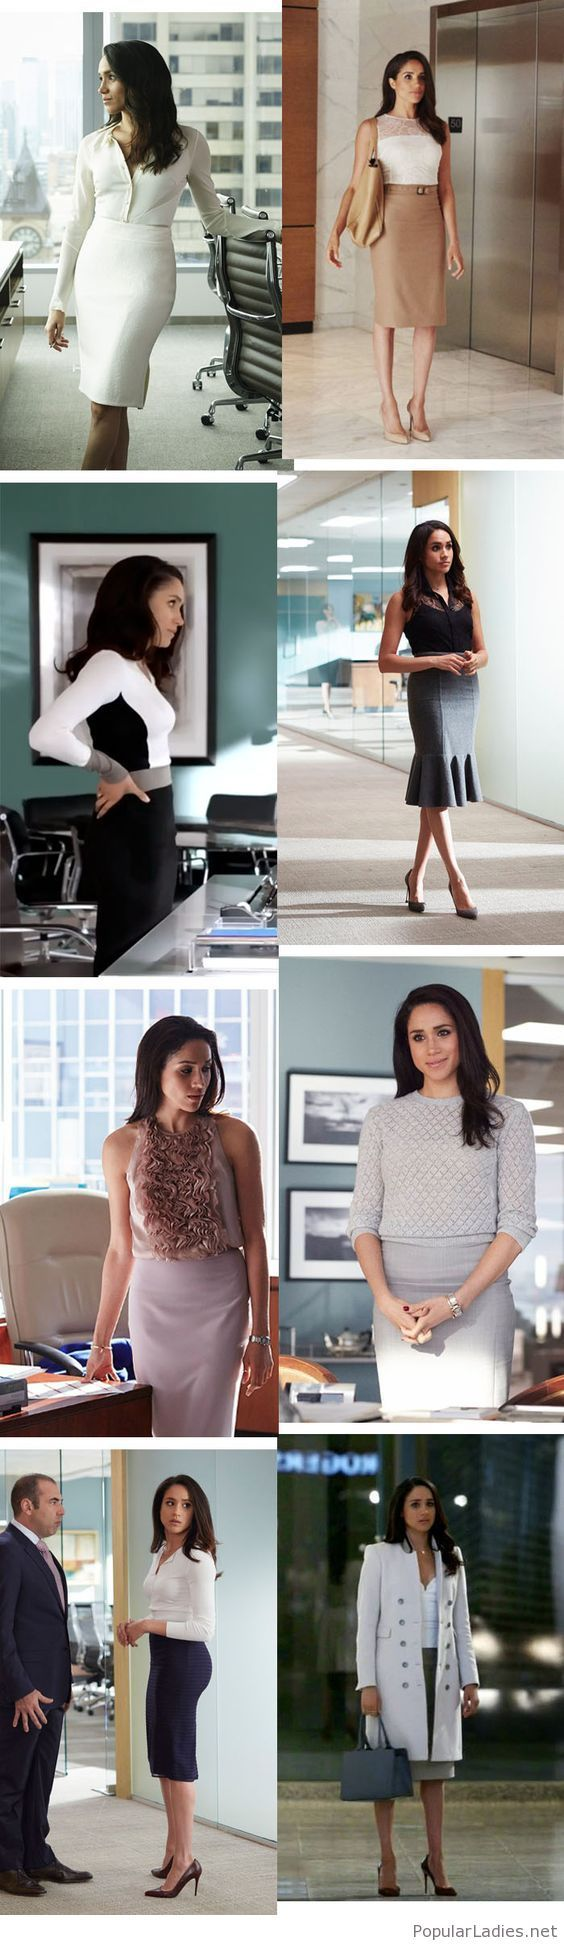 Awesome Rachel Zane outfits for office